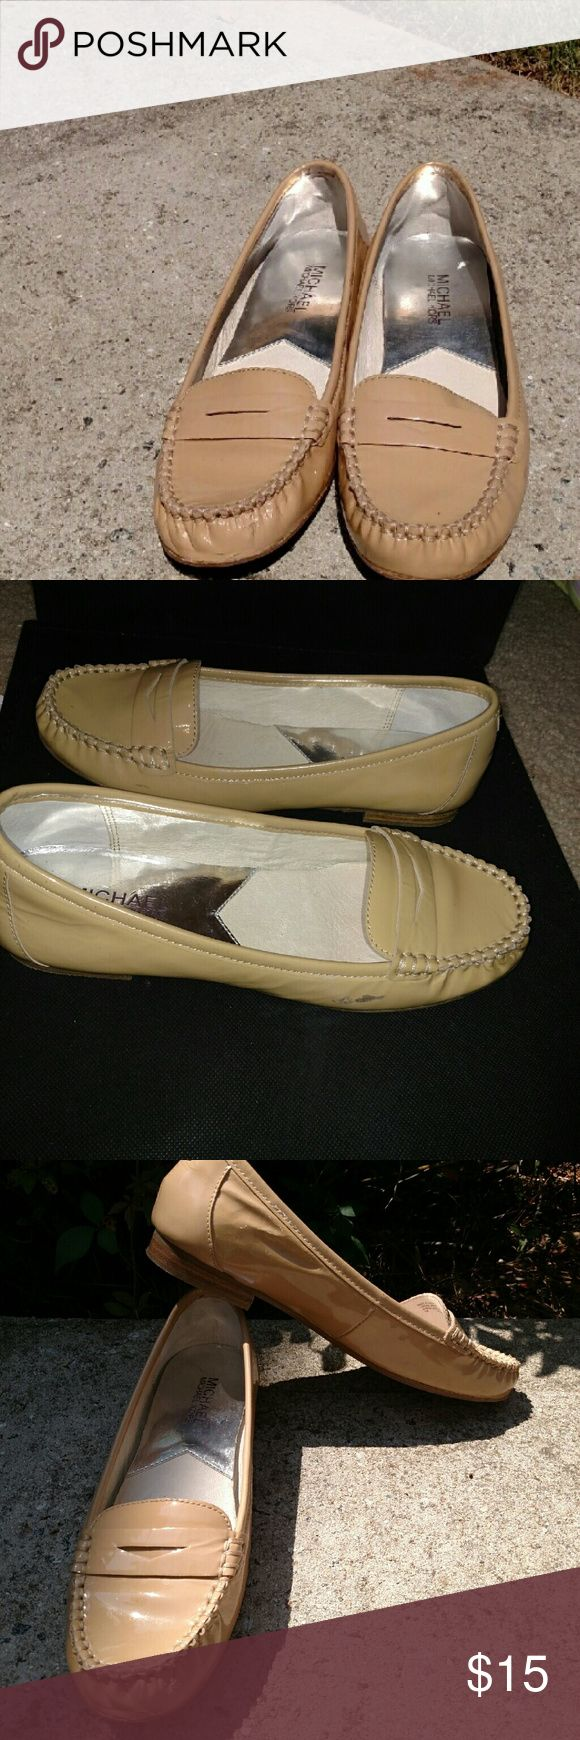 Selling this MICHAEL Michael Kors loafers in my Poshmark closet! My username  is: mandyj0819